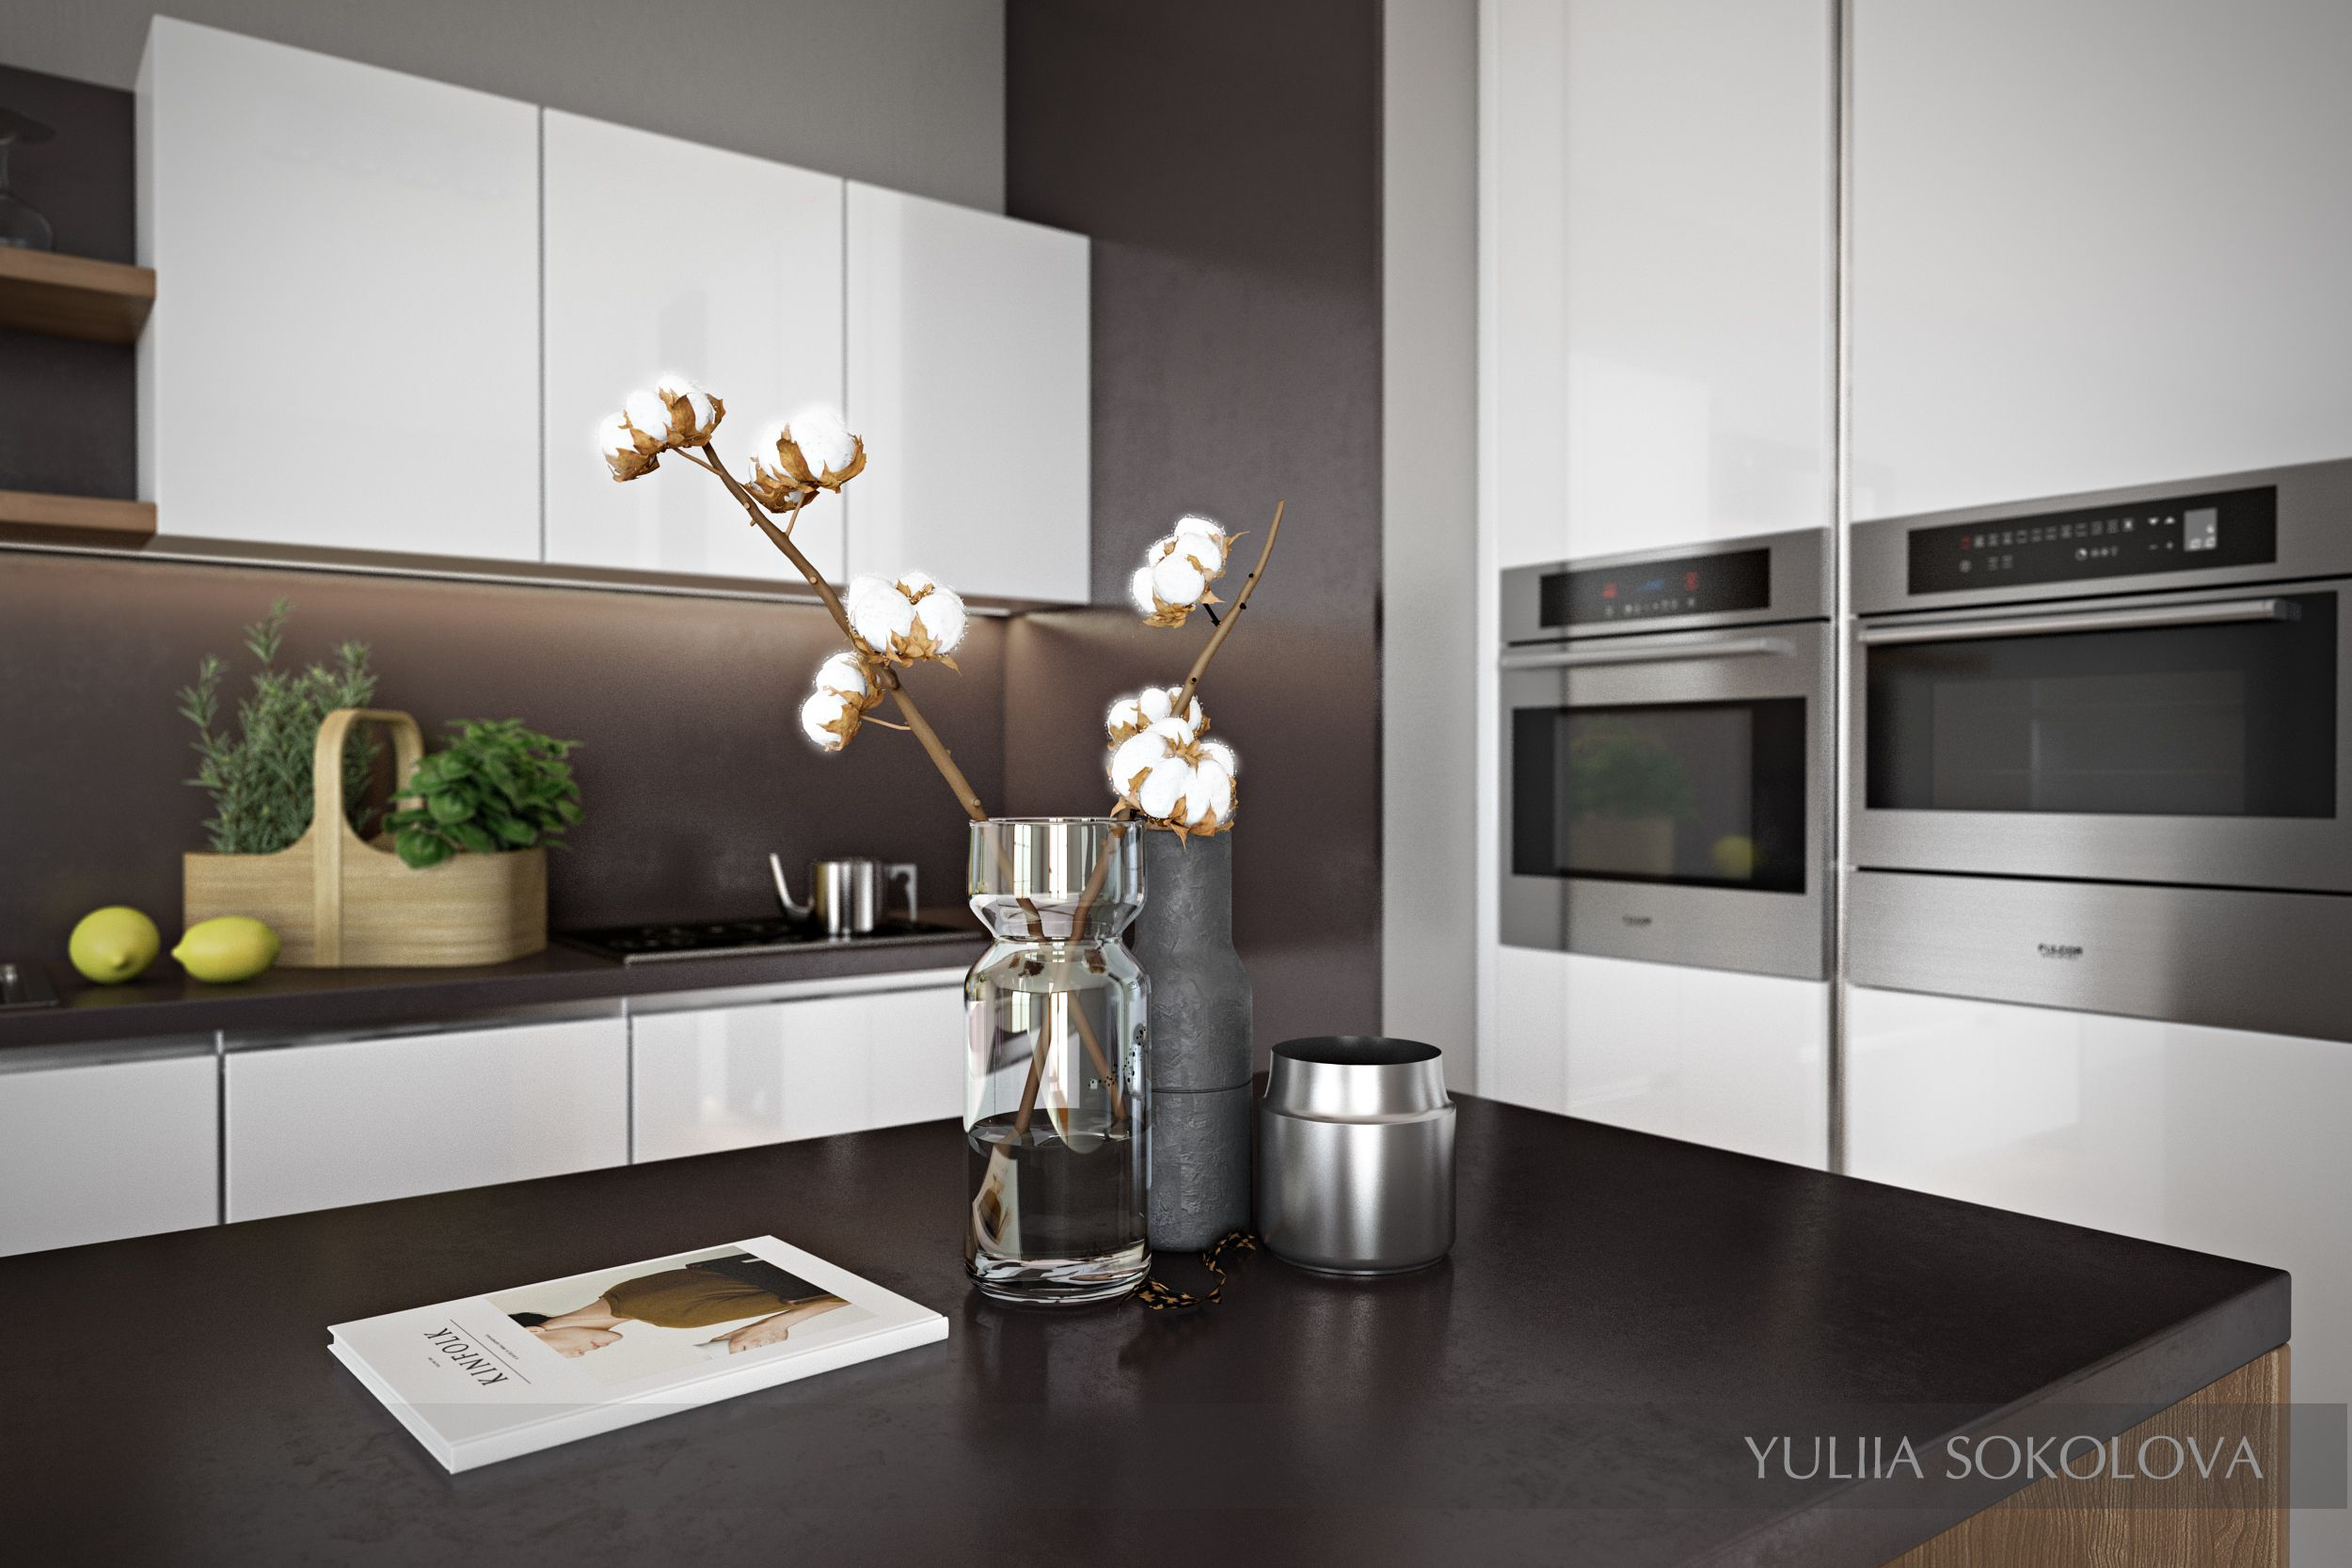 family kitchen on behance with images family kitchen small u shaped kitchens kitchen on u kitchen interior id=40082